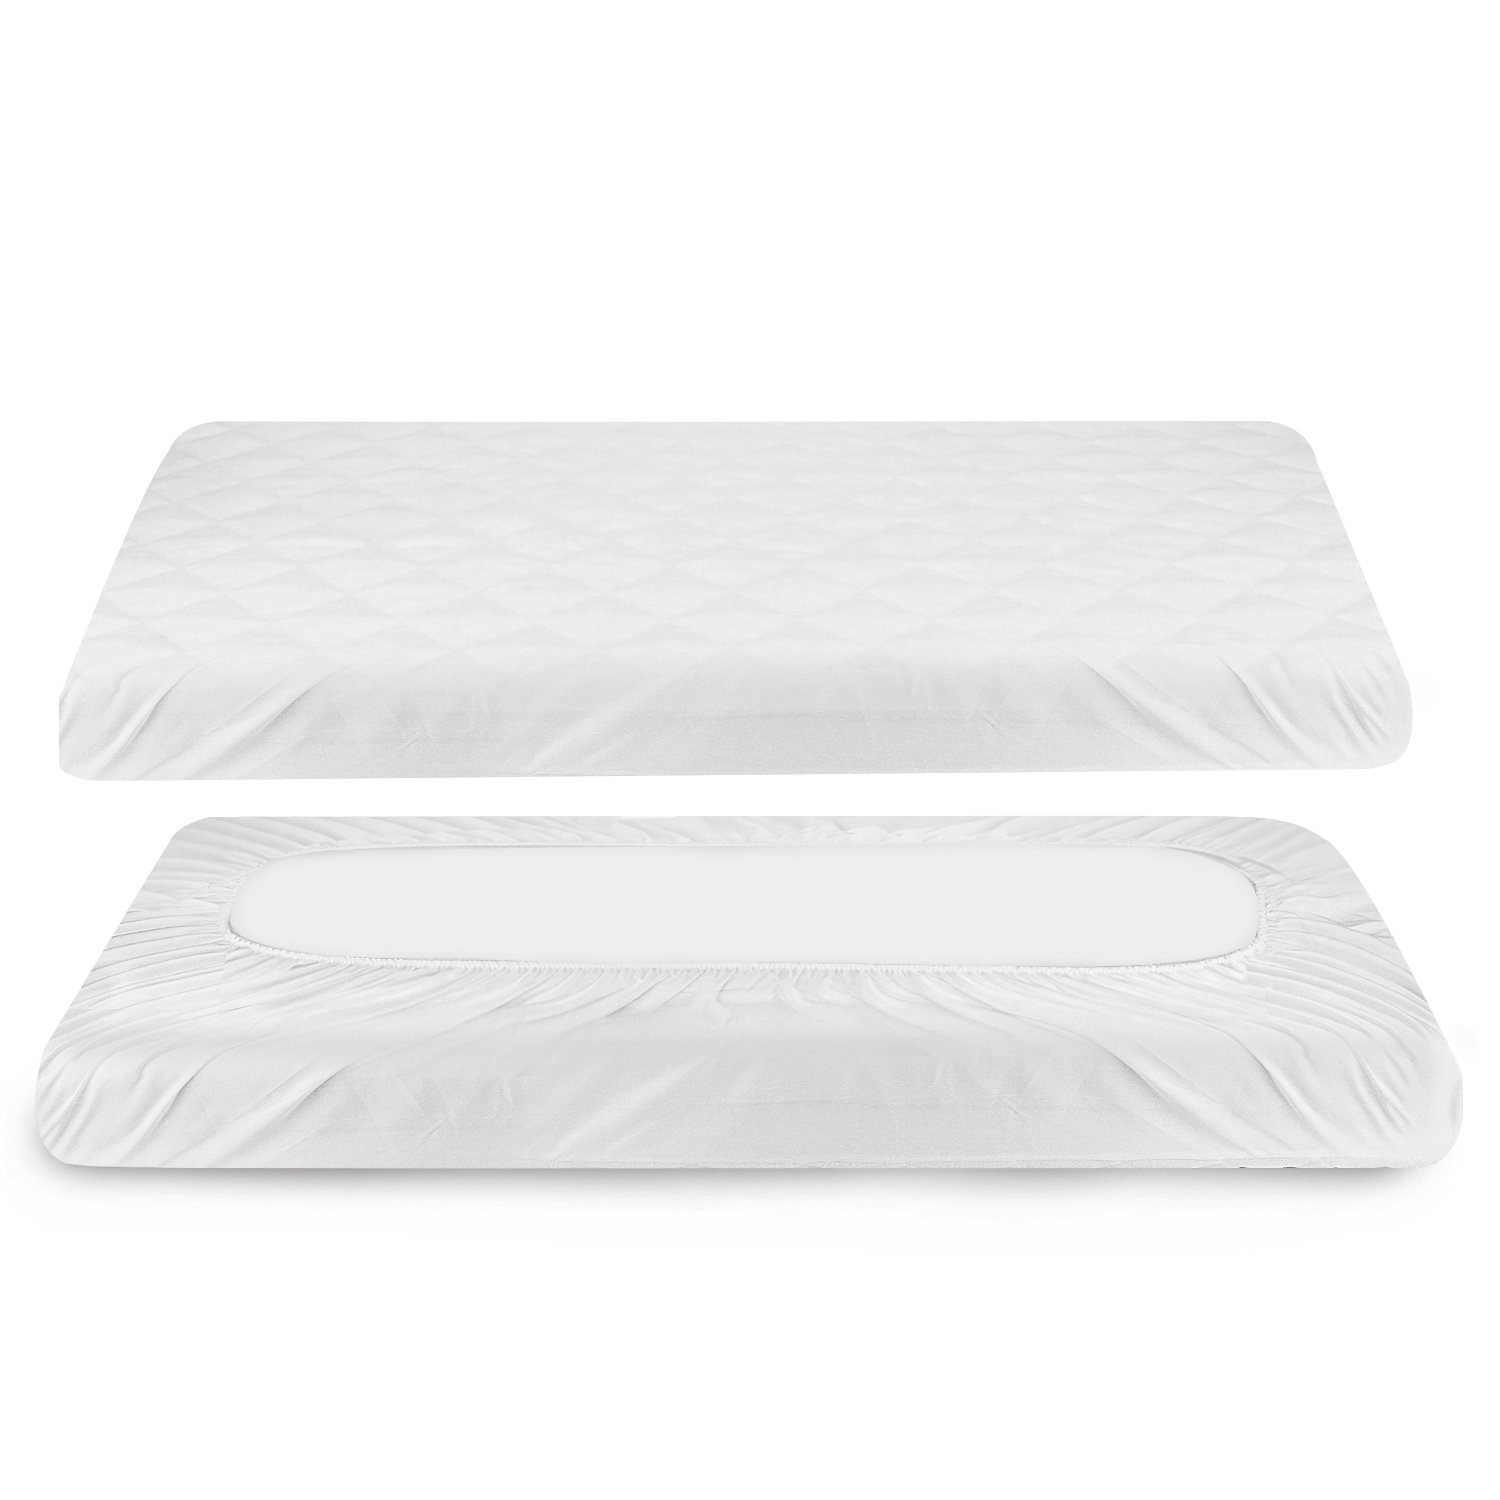 Baby Waterproof Mattress Pad Cover, Zooawa Reusable Super Soft Breathable Waterproof Crib Mattress Protector Cover for Newborn Infant, 51L x 28W 51L x 28W